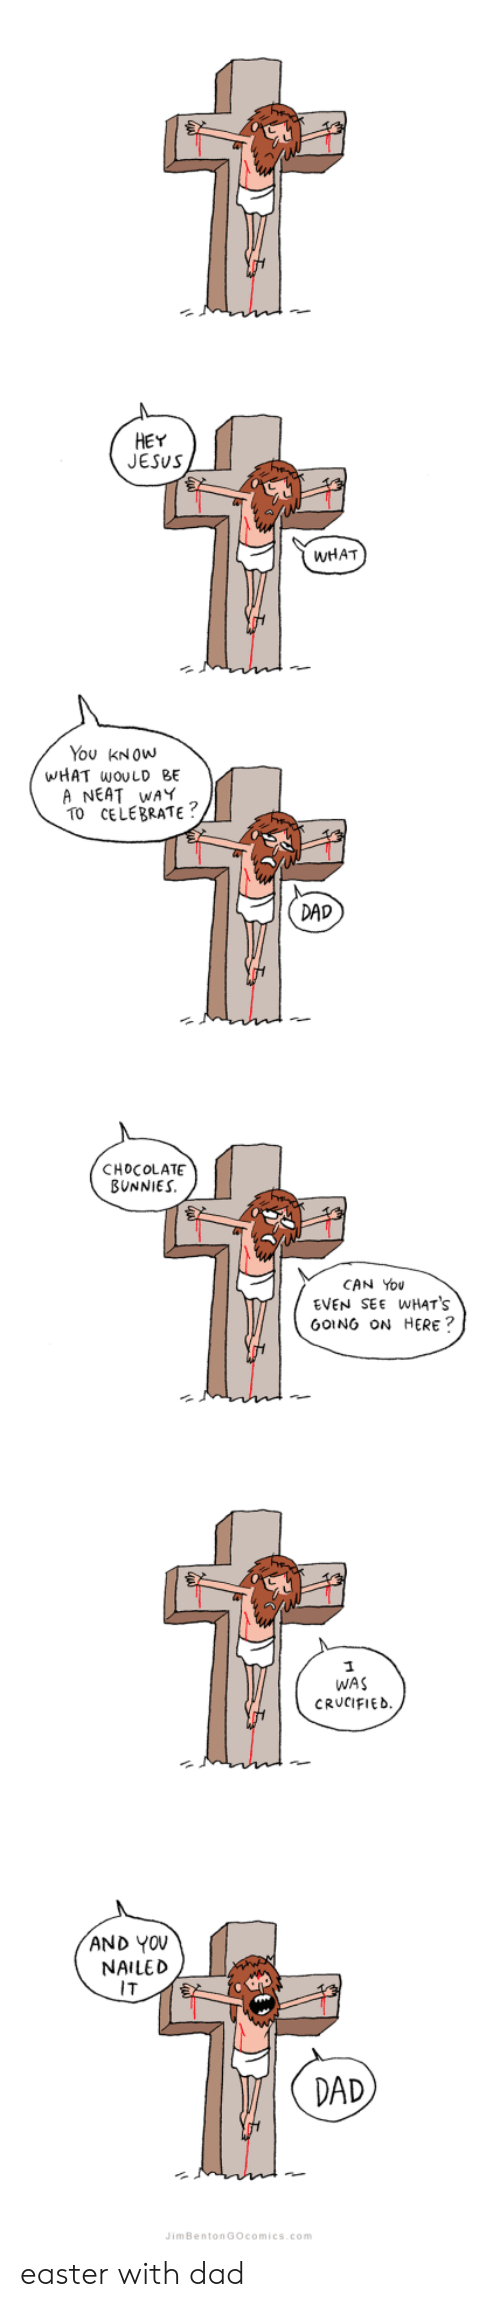 Bunnies, Dad, and Easter: HEY  JESUS  WHAT  You KNOWw  WHAT wOULD BE  A NEAT WAY  TO CELEBRATE  DAD  CHOCOLATE  BUNNIES  CAN You  EVEN SEE WHATS  GOING ON HERE?  WAS  CRUCIFIED  AND YOV  NAILED  IT  2  DAD  imBentonGOcomics.com easter with dad